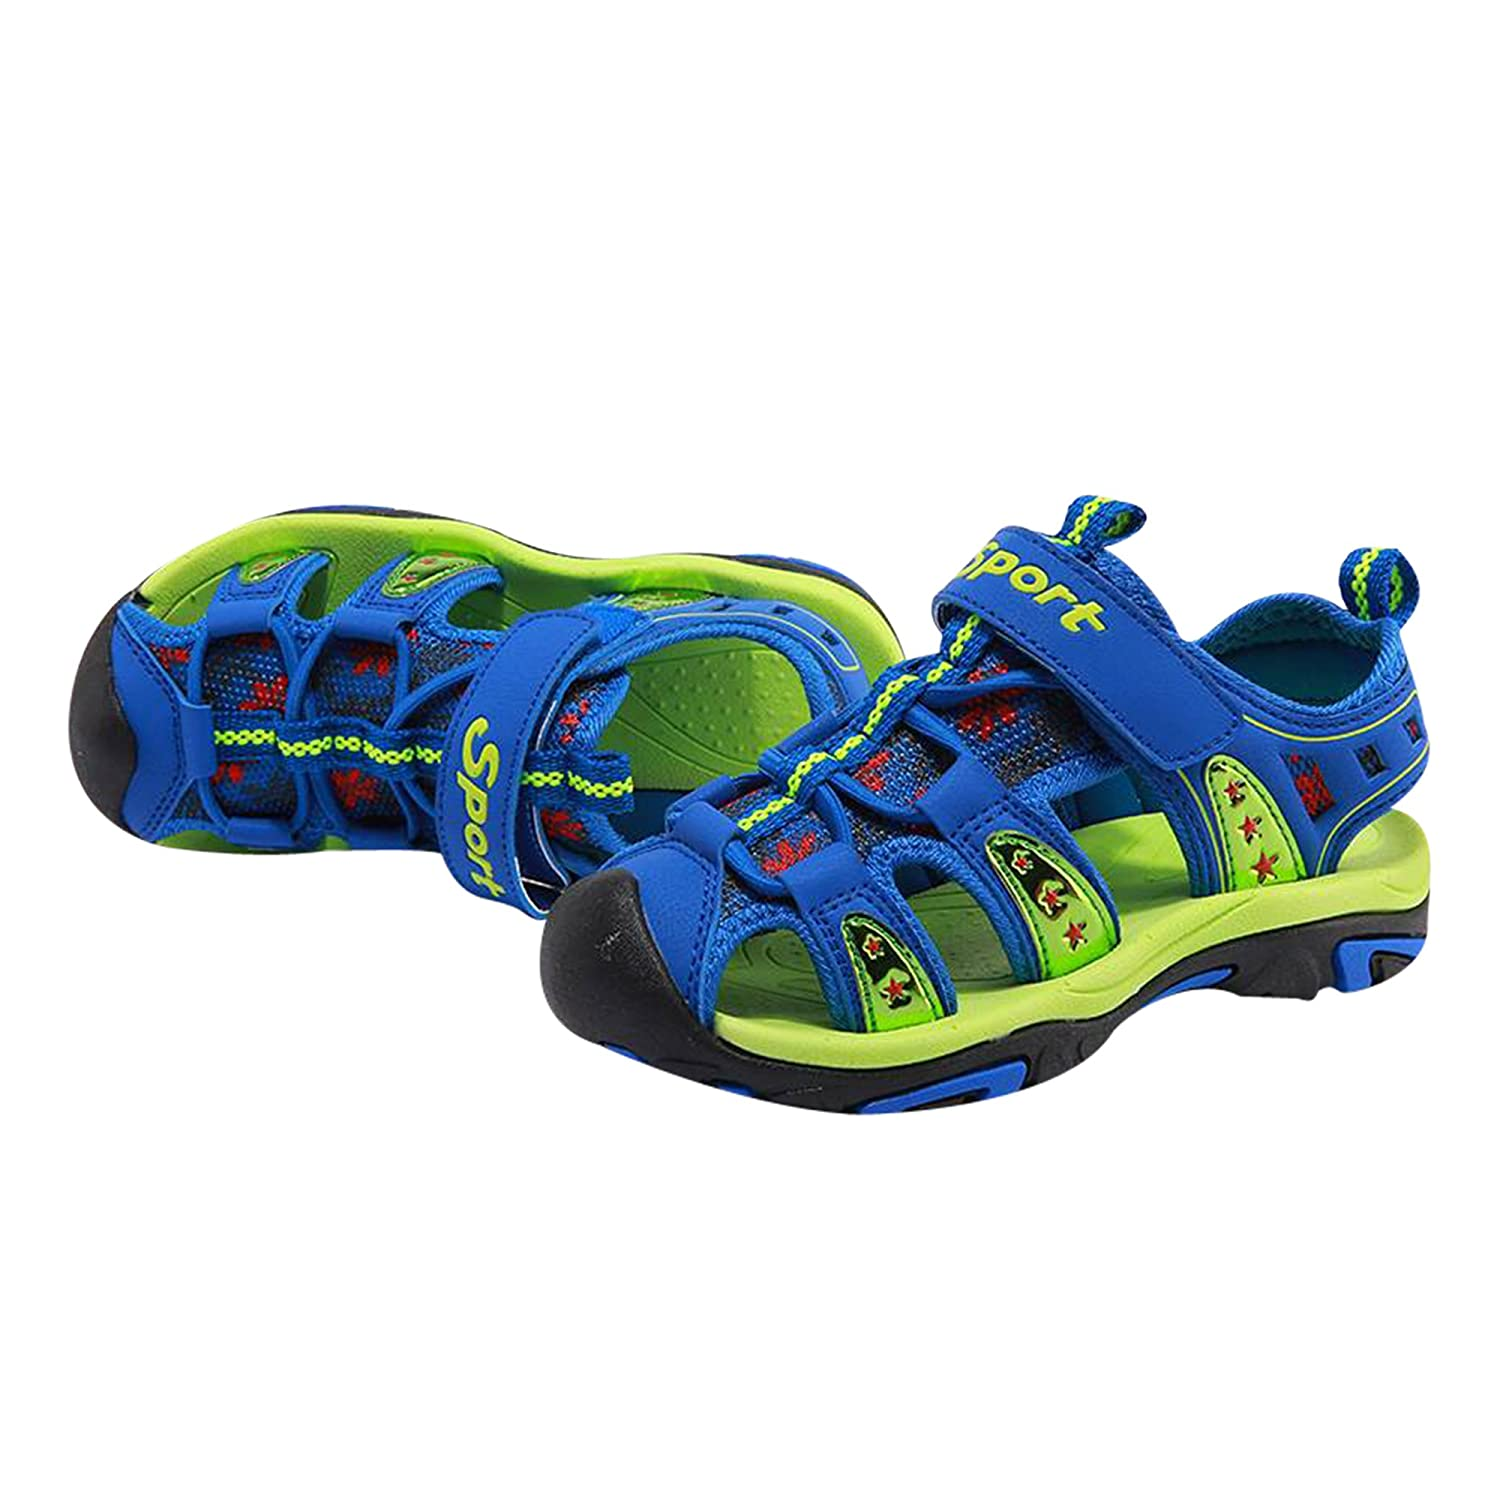 12 M Little Kid, Blue Green Toddler//Little Kid//Big Kid LV Enterprise Summer Beach Breathable Mesh Water Outdoor Athletic Quick Dry Closed-Toe Sandals